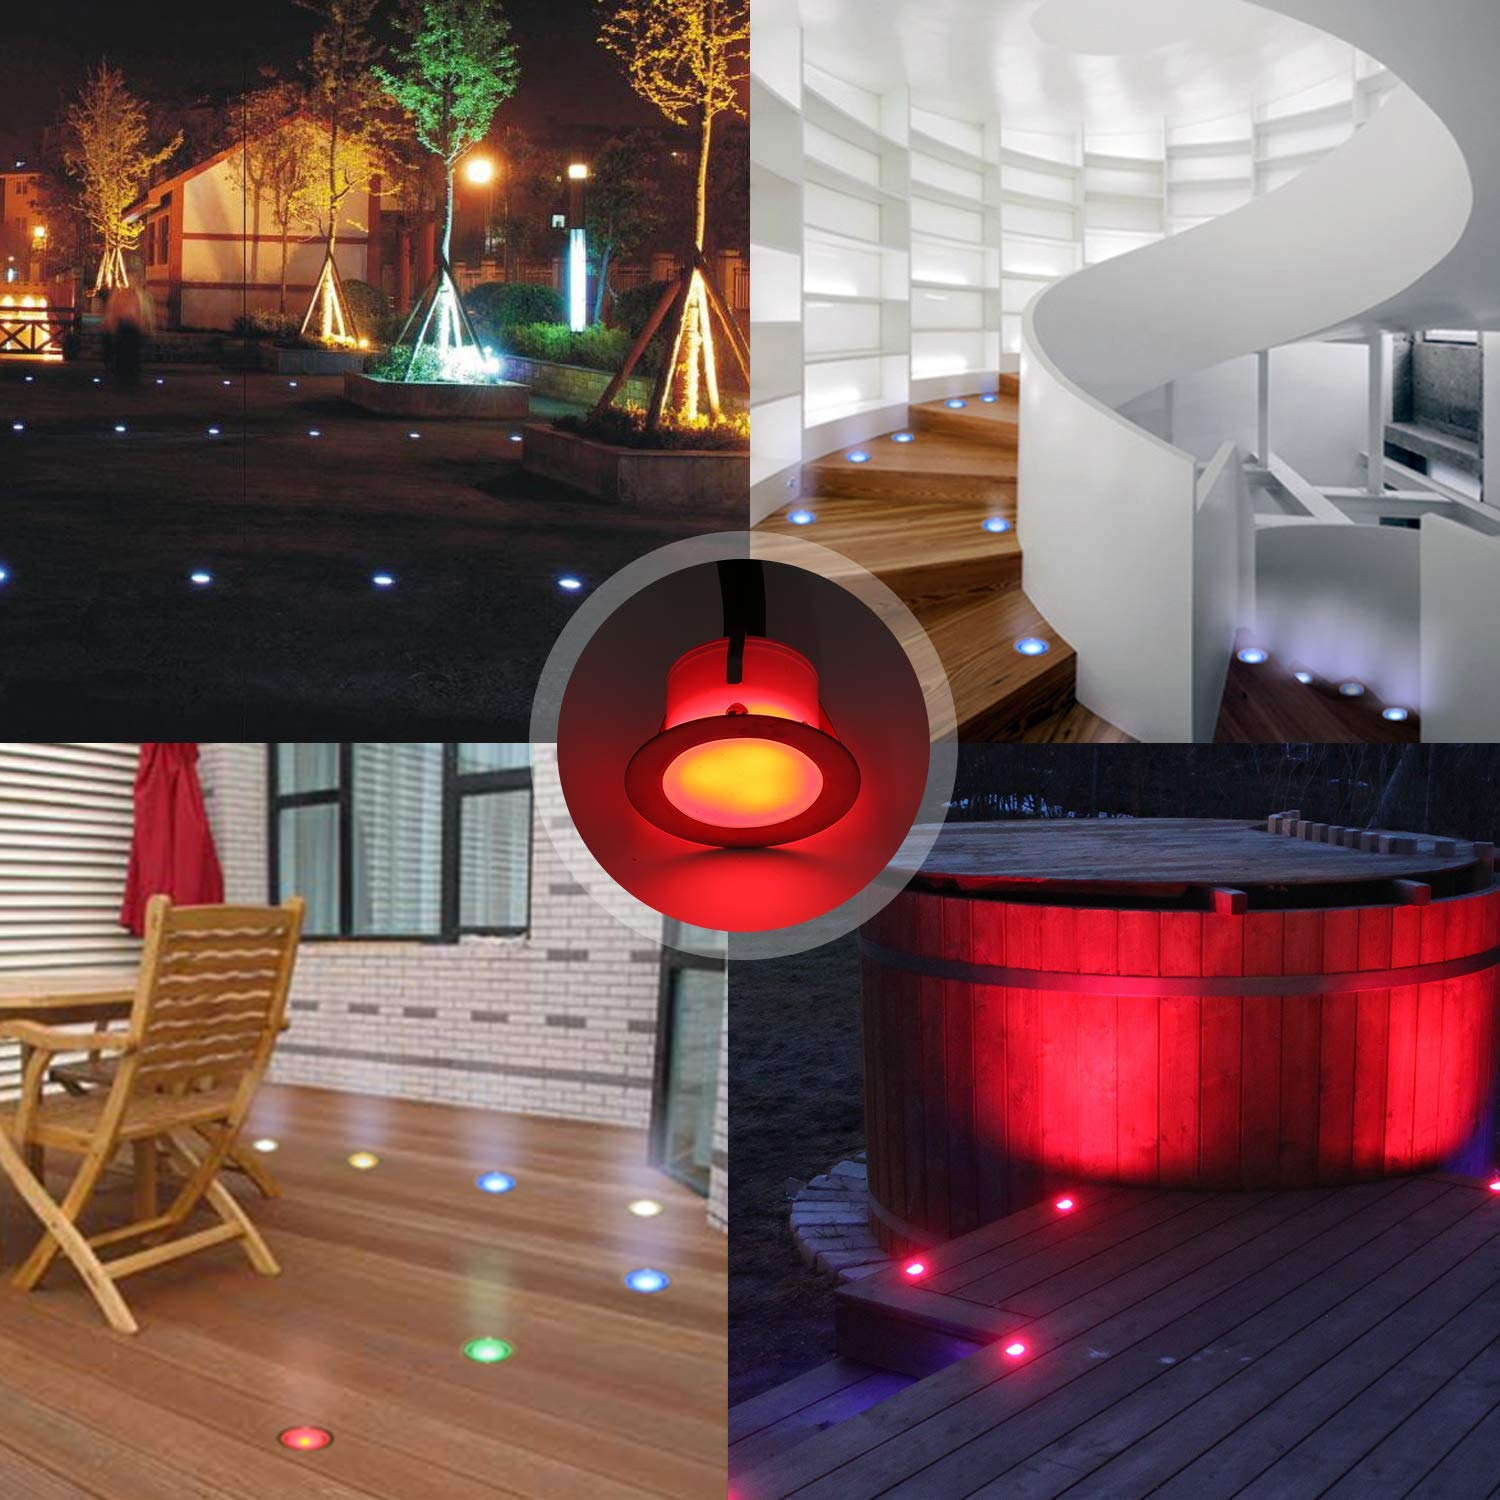 CHNXU 10 Pack LED Deck Lighting Kit with Transformer Warm White IP67 Waterproof /Φ1.77 12V Low Voltage Recessed Landscape Garden Yard Patio Step Stair Decoration Lamps LED In-ground Lights